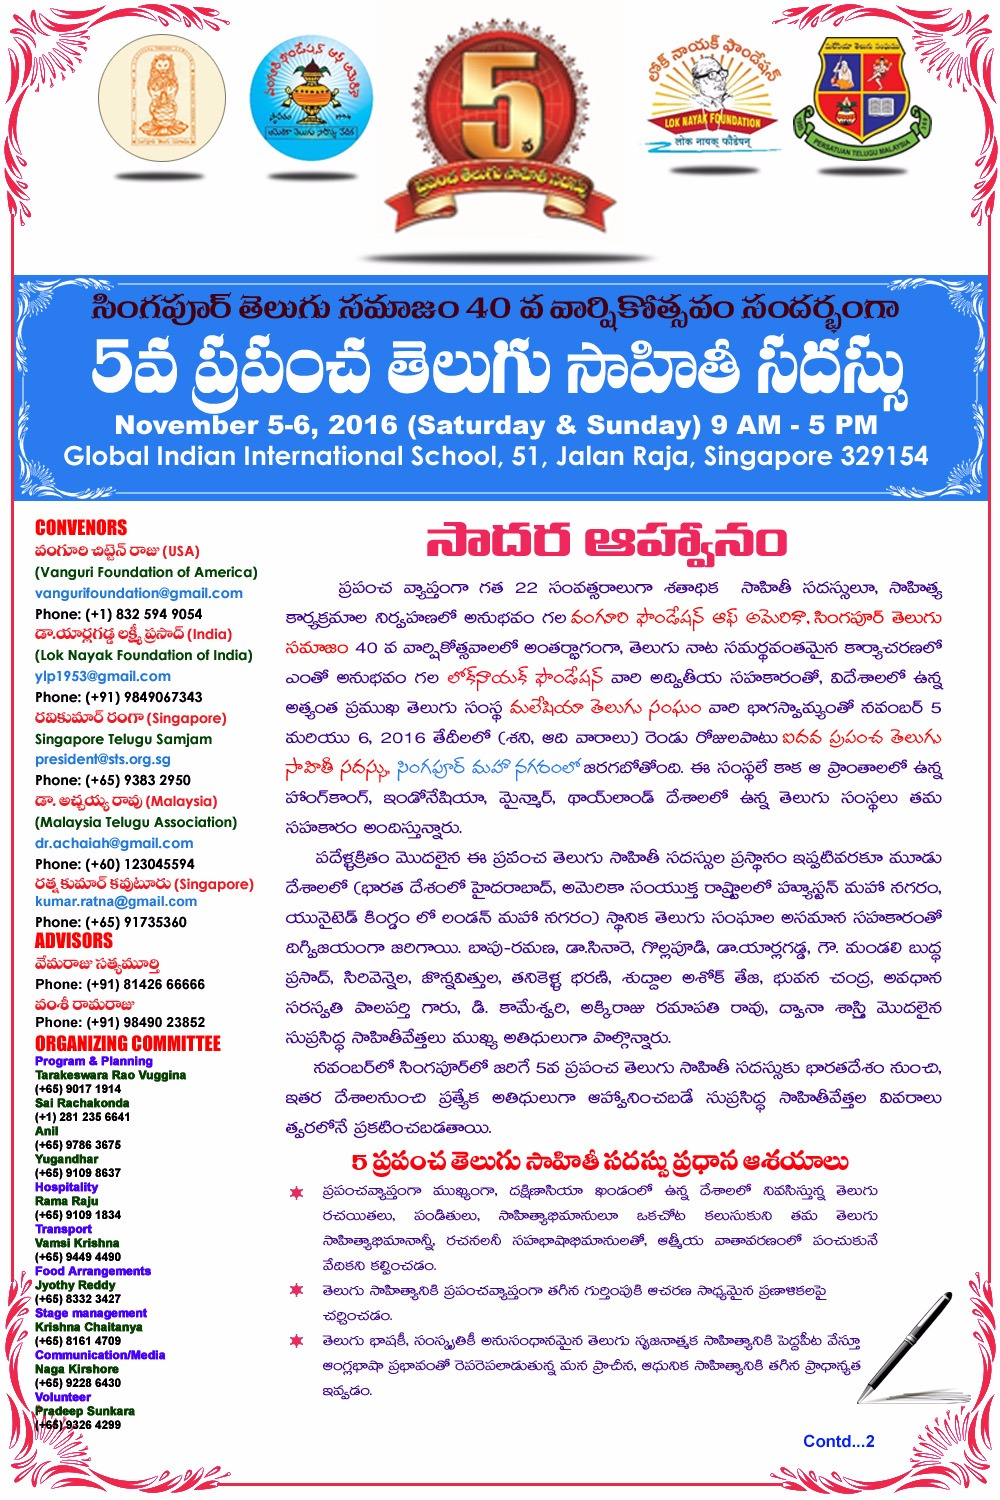 5th World telugu Sahithi Sadassu